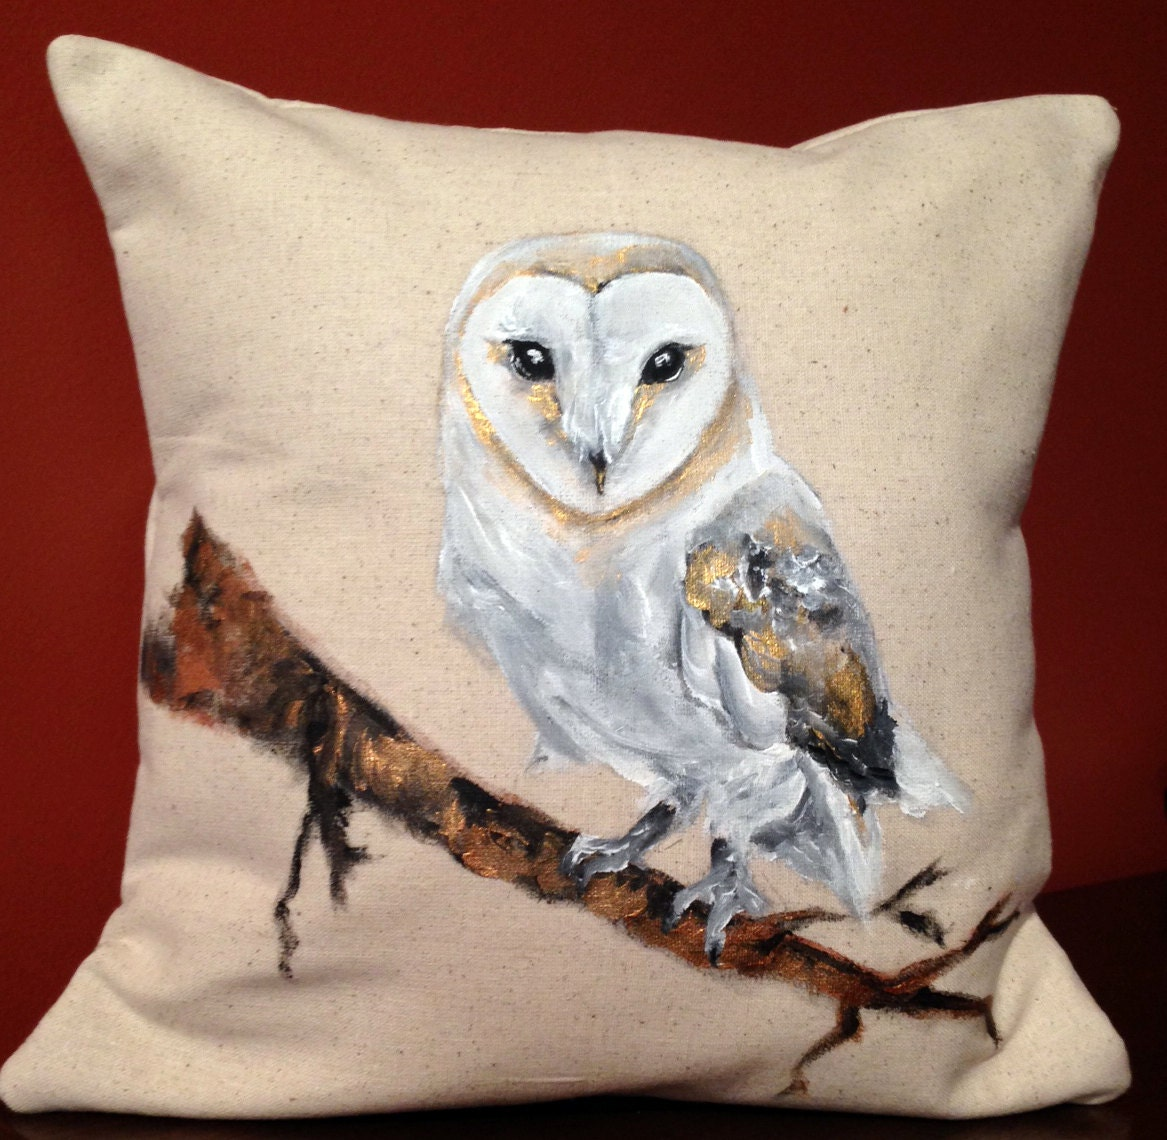 Barn Owl Painted Decorative Pillow White and Gold One of a